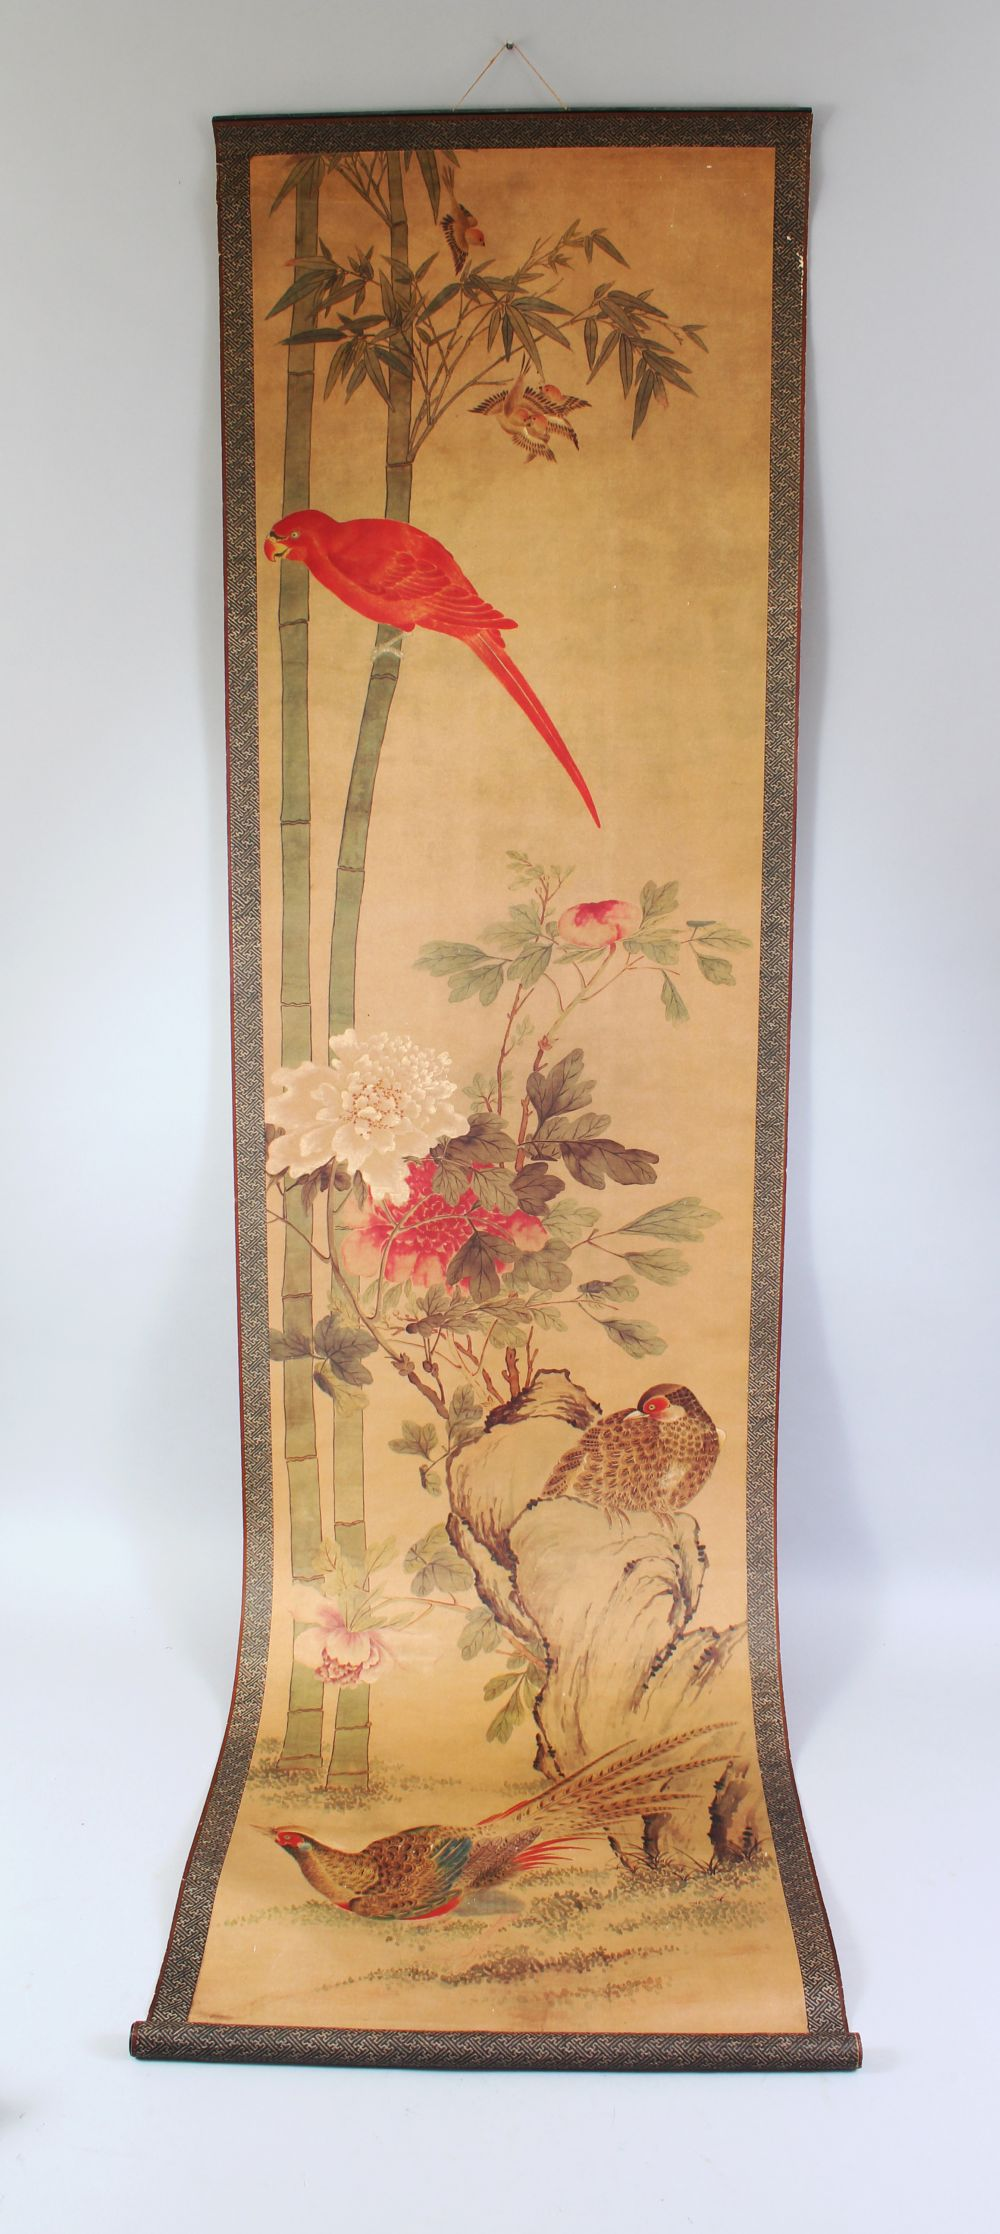 A 20TH CENTURY CHINESE PRINTED HANGING SCROLL PICTURE, depicting pheasants and other birds, 150cm